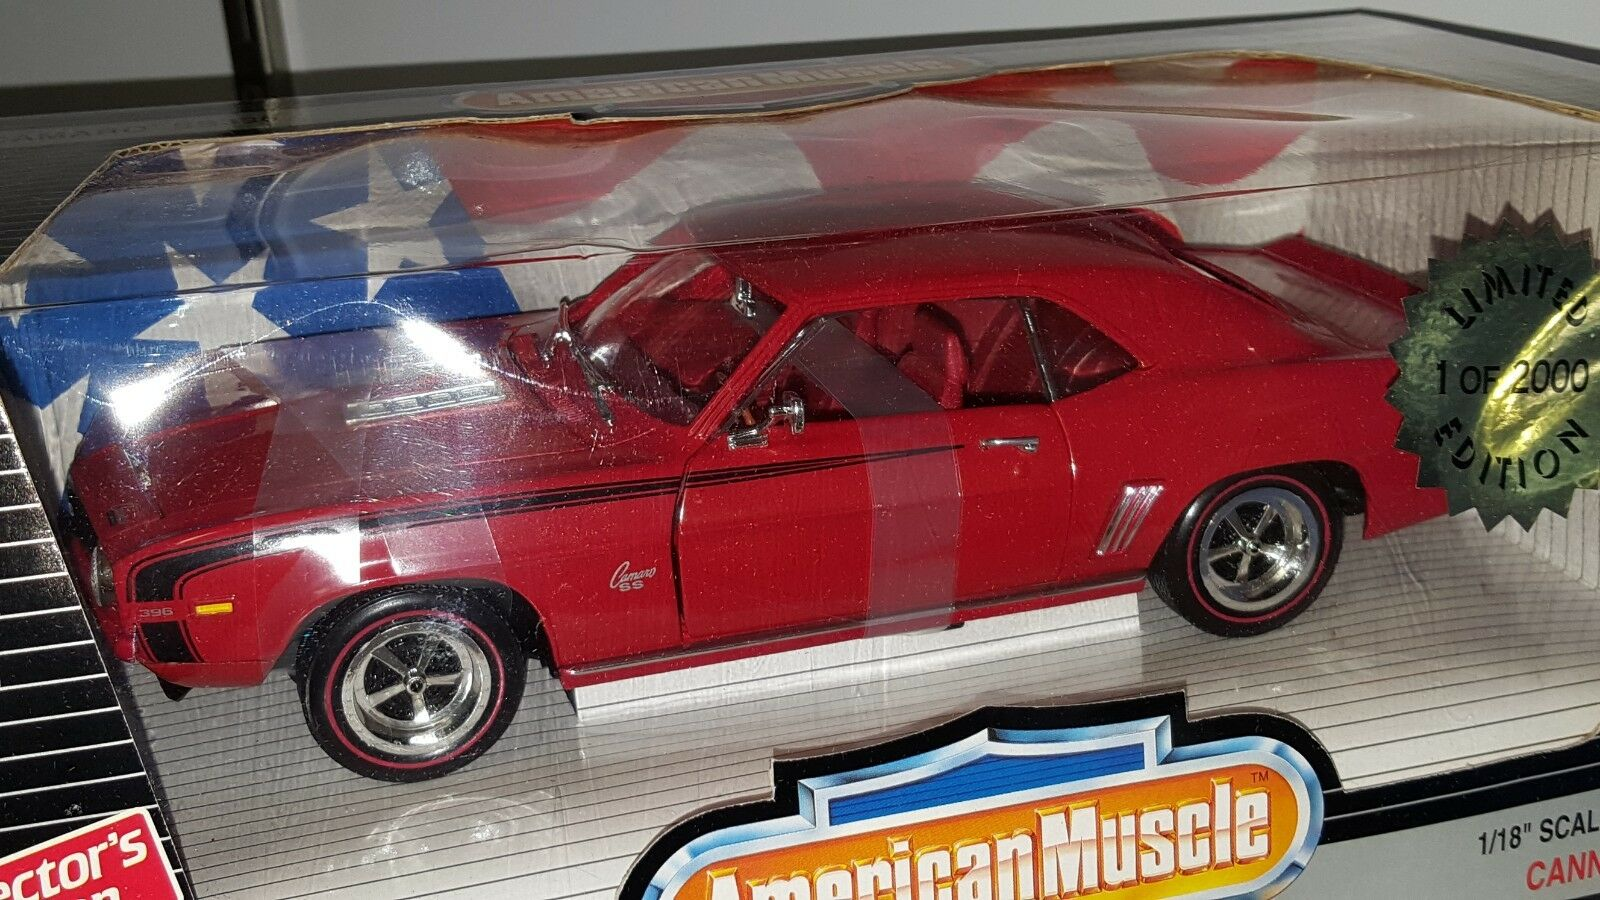 1 18 ERTL AMERICAN MUSCLE CANNADAY'S HOBBY 1969 CHEVROLET CAMARO SS396 rosso od